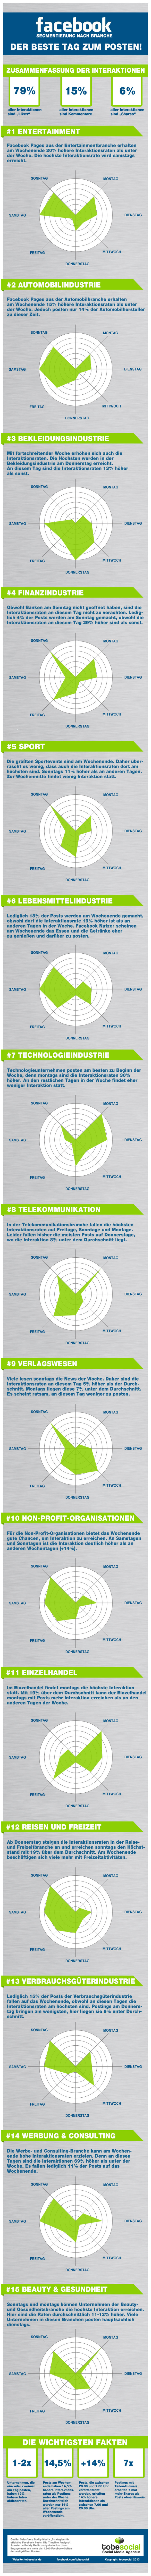 Infografik ? Strategien für Facebook-Postings nach Branche (Social Media Agentur tobesocial)